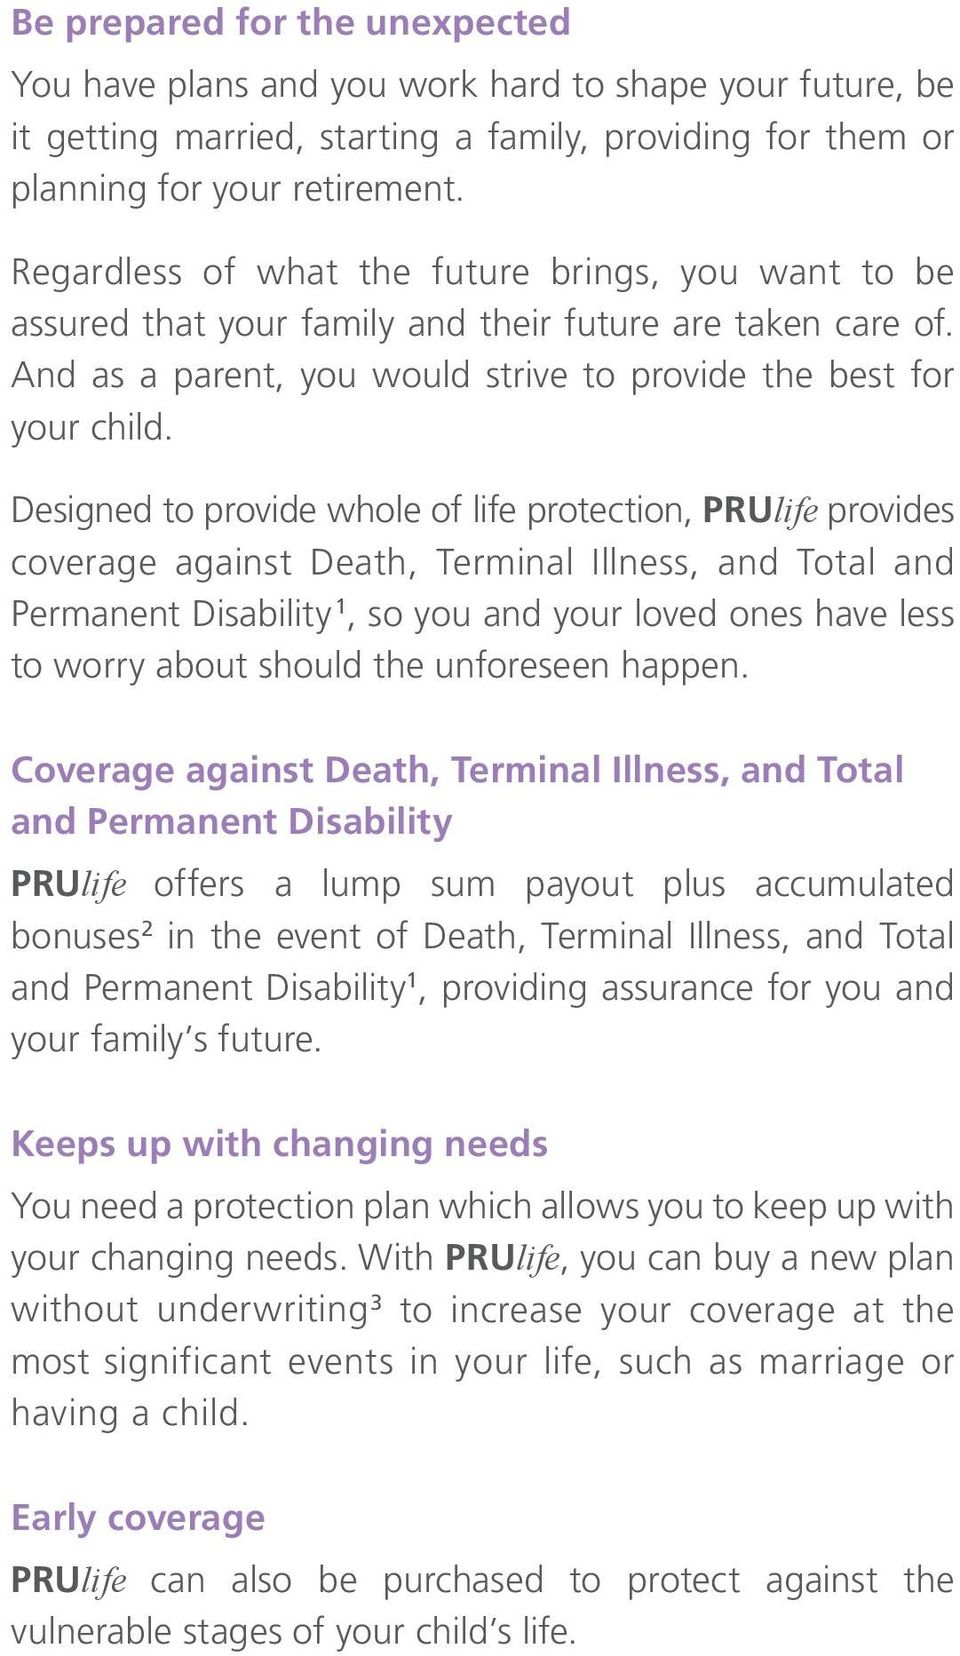 Designed to provide whole of life protection, PRUlife provides coverage against Death, Terminal Illness, and and Permanent Disability 1, so you and your loved ones have less to worry about should the